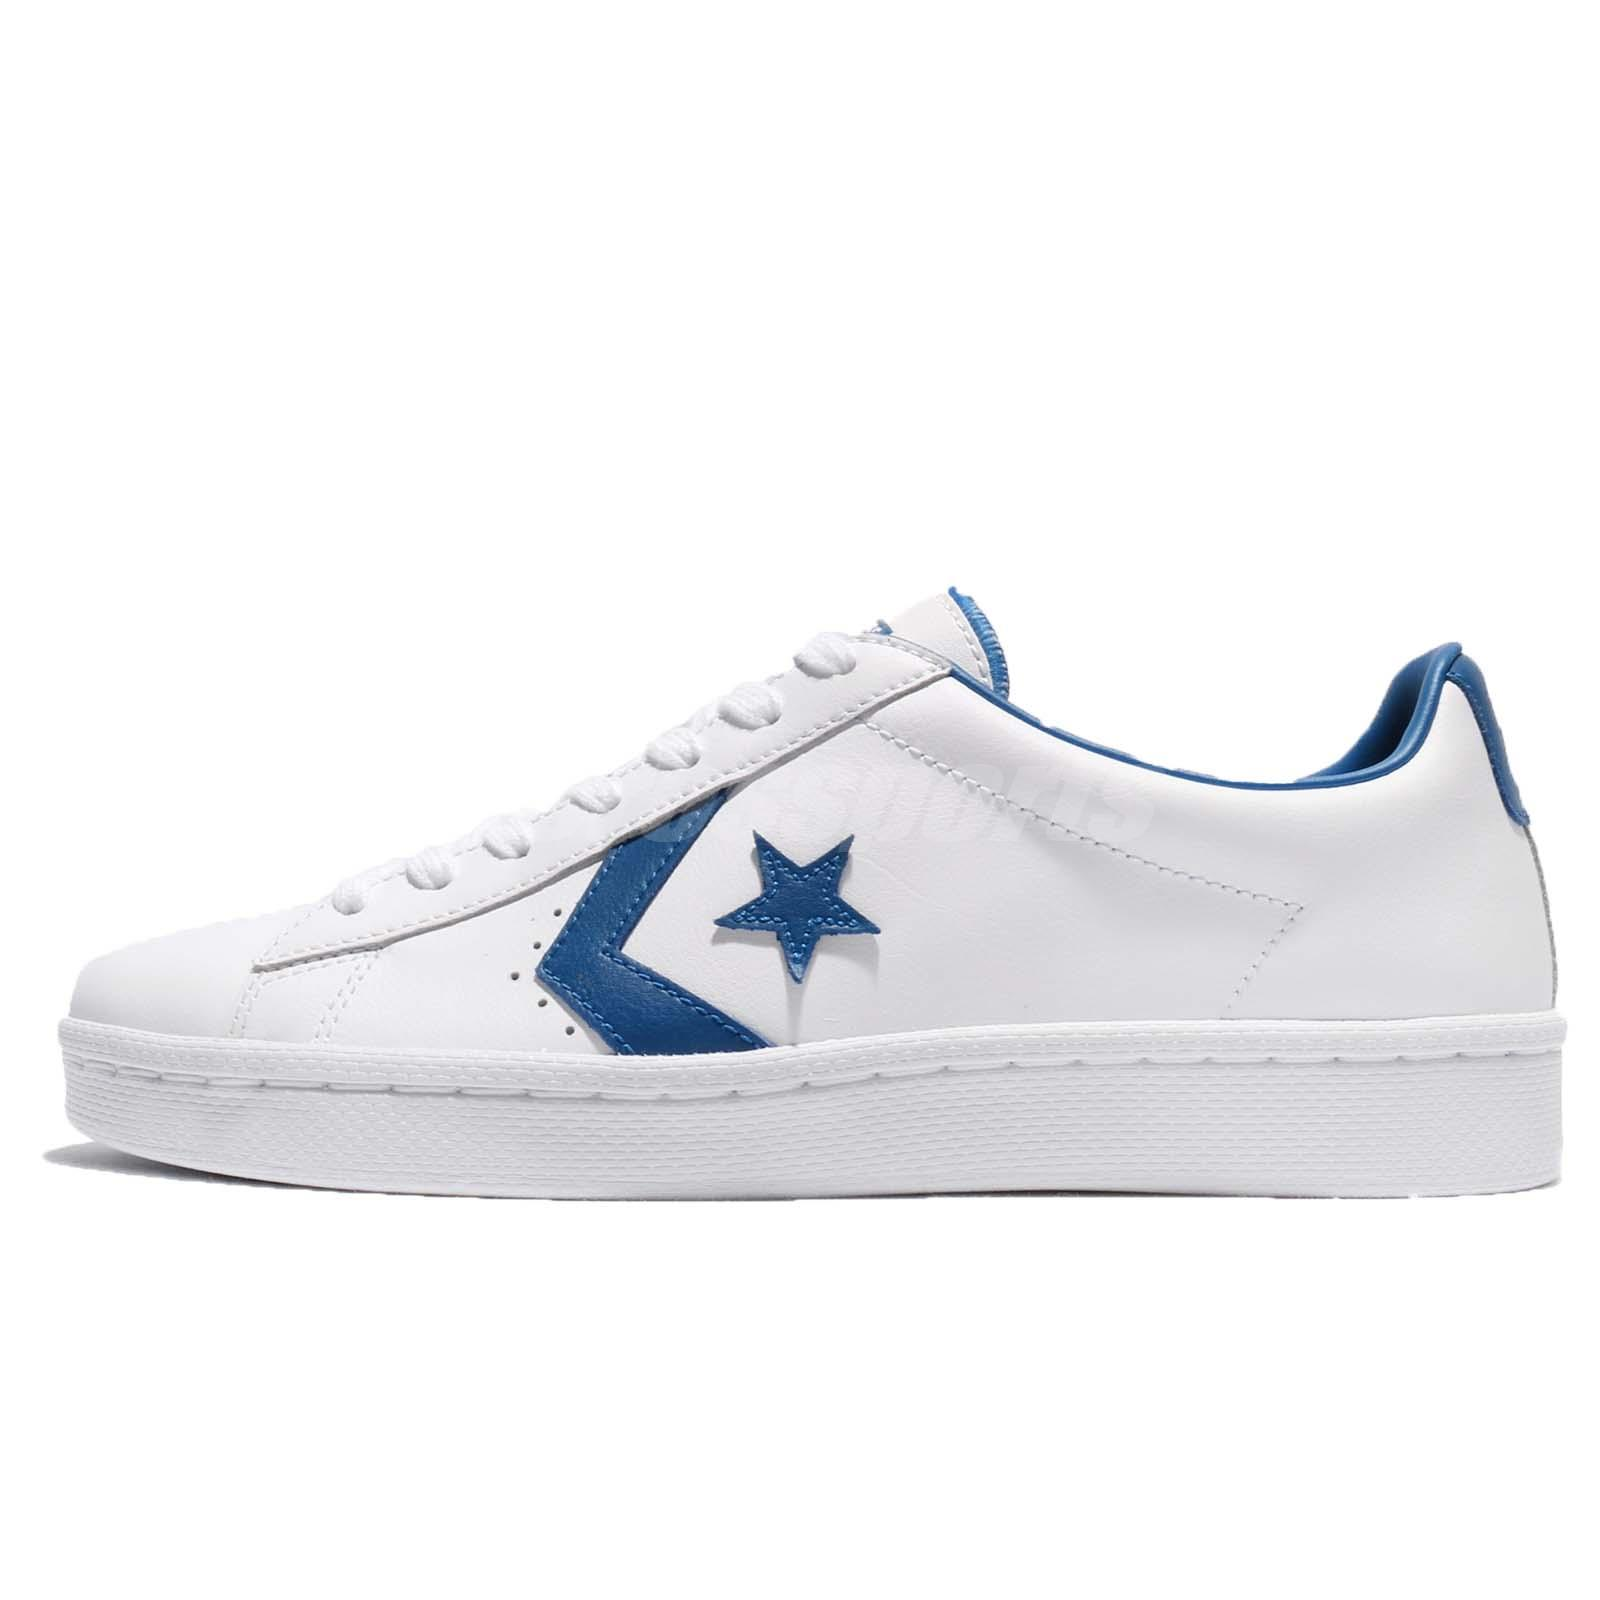 Converse PL 76 Pro Leather White Blue Jay Men Vintage Shoes Sneakers 157807C 0f9e24ba5